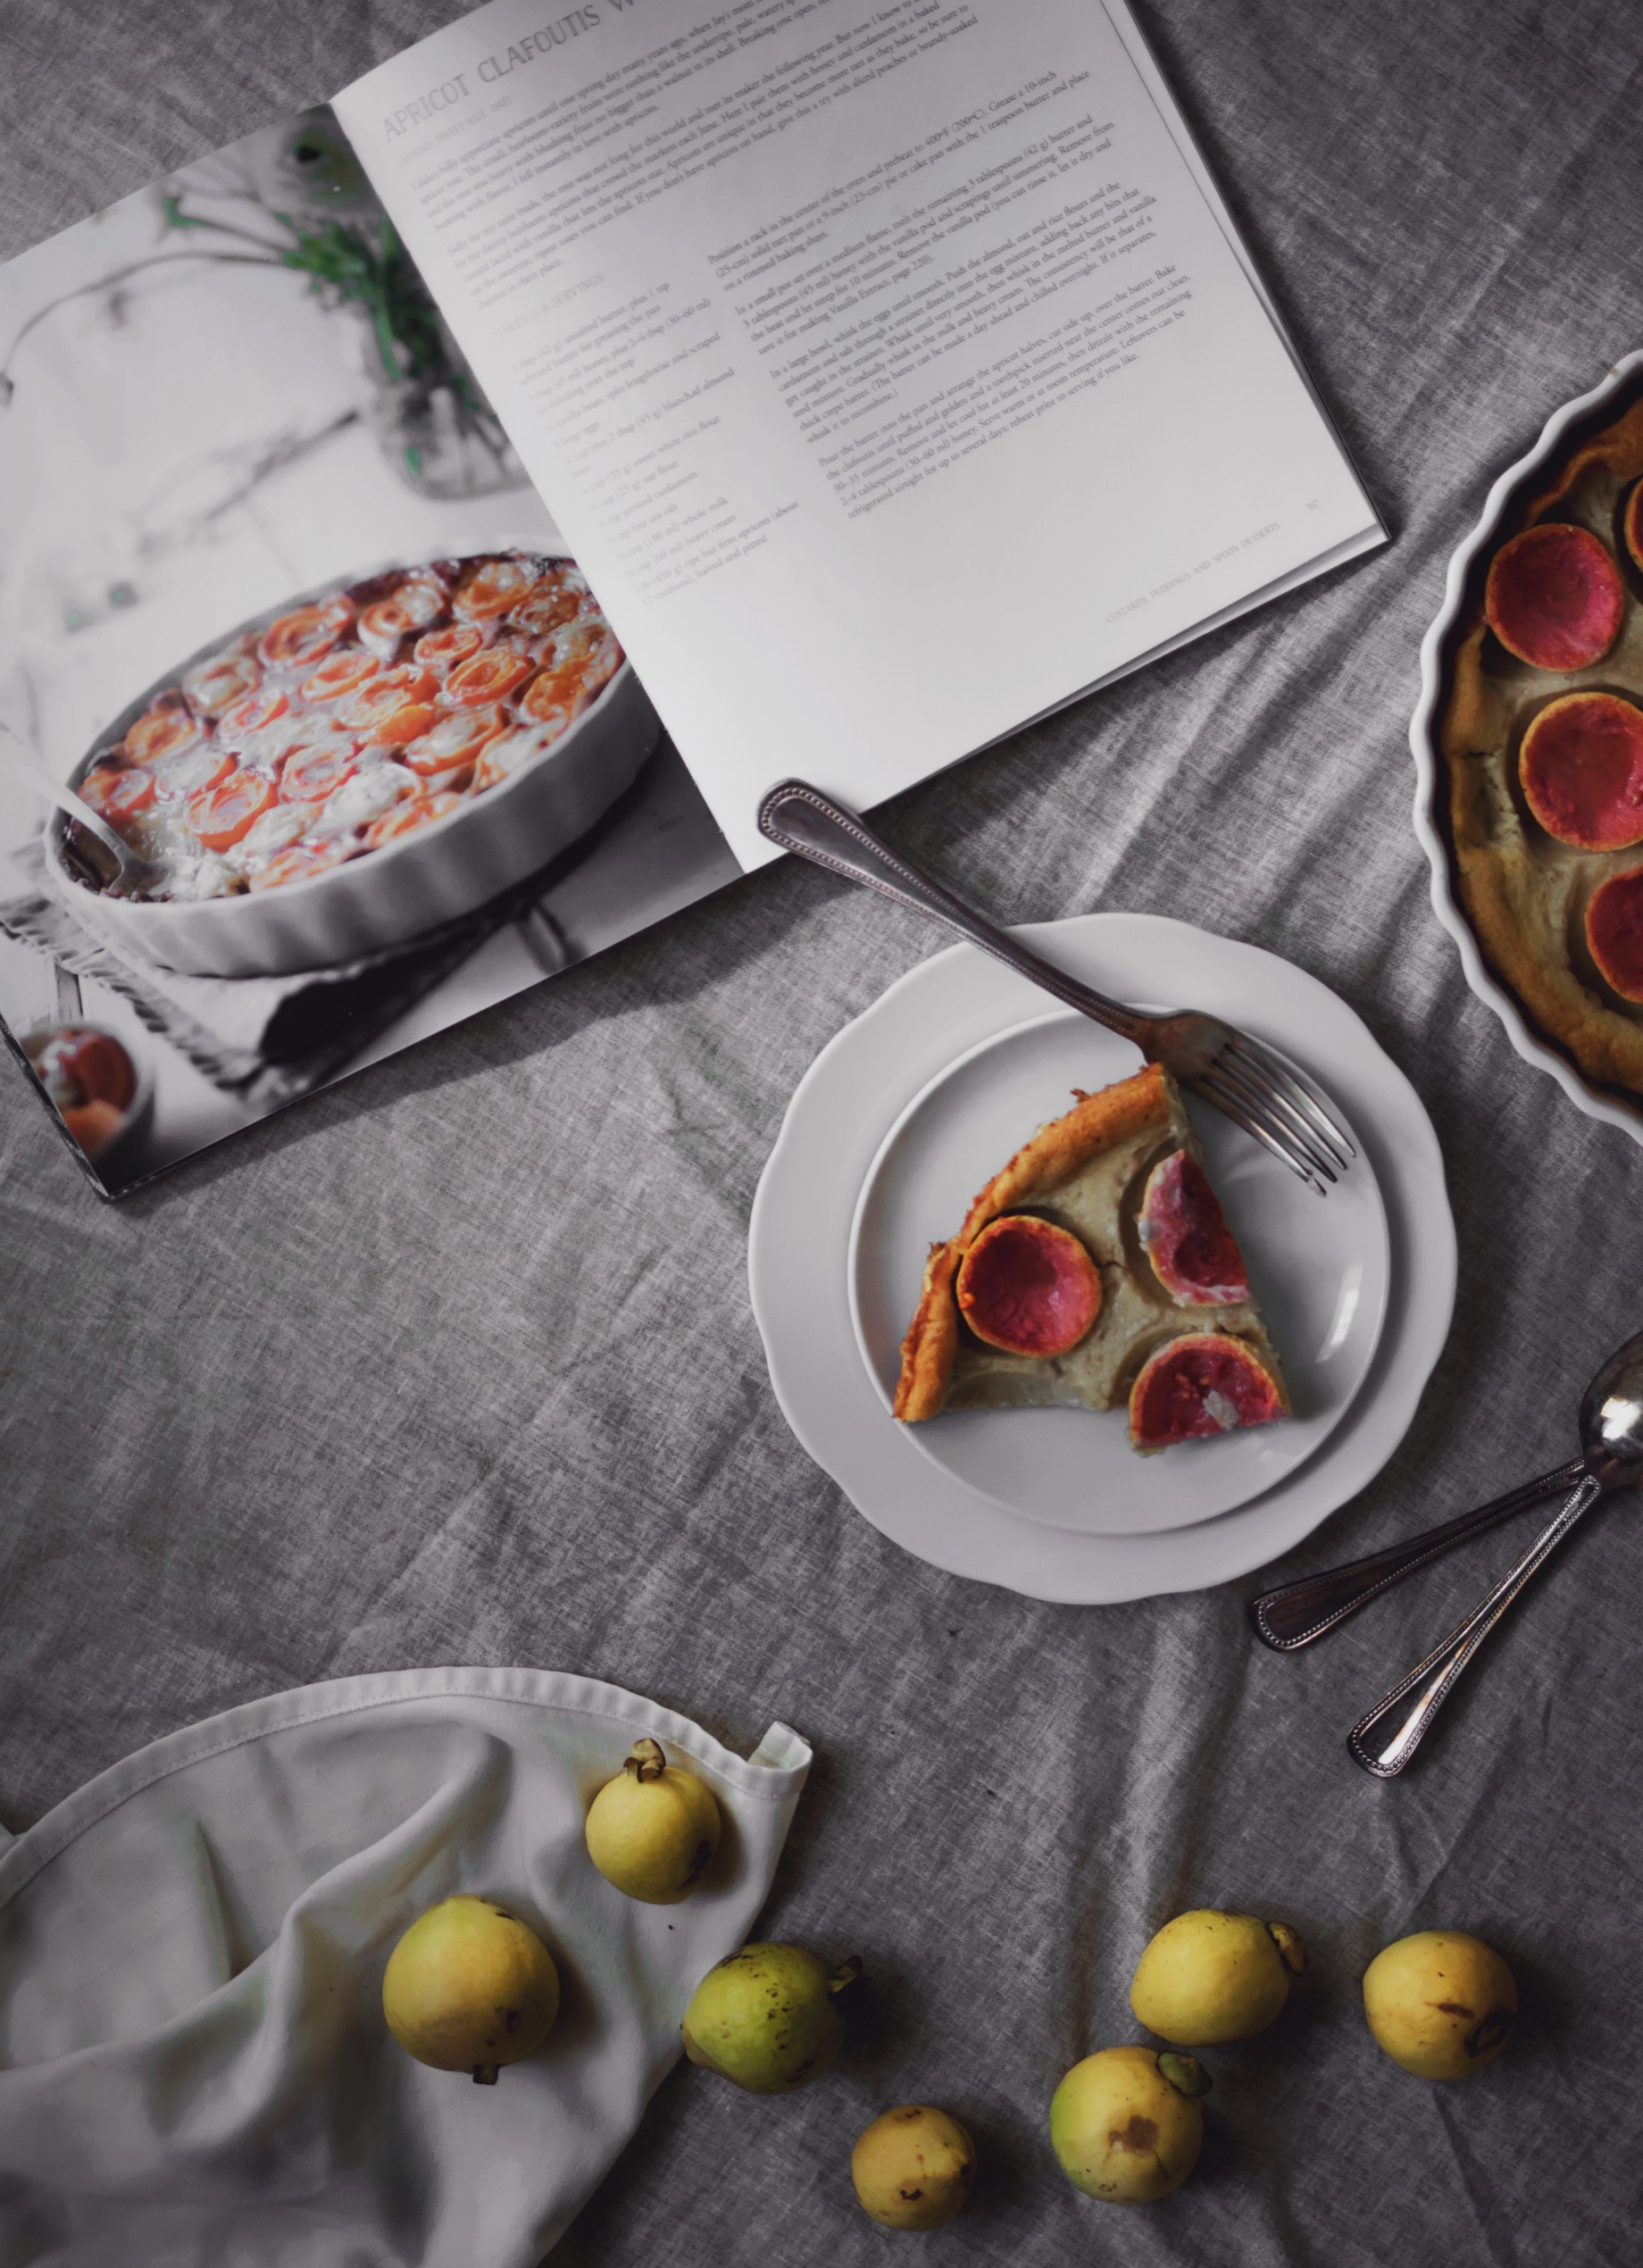 Gluten free guava cardamom clafoutis recipe, an adaptation from the #AlternativeBakerBook | from scratch, mostly